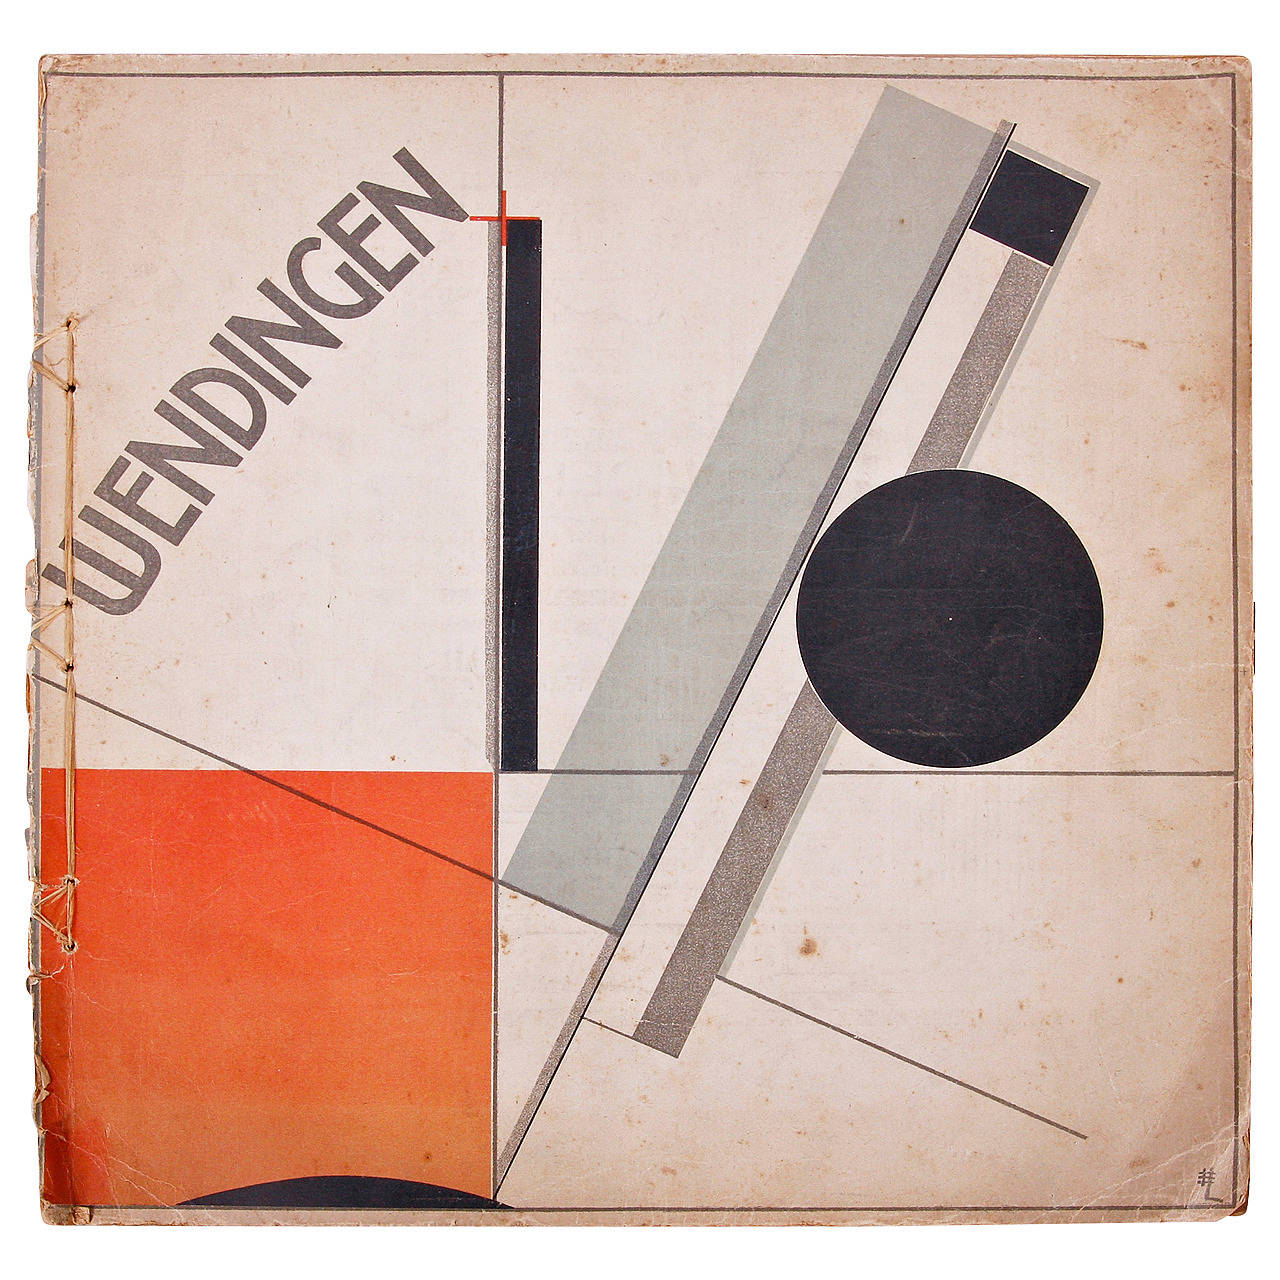 Wendingen, Issue 11, Cover by El Lissitzky, 1921